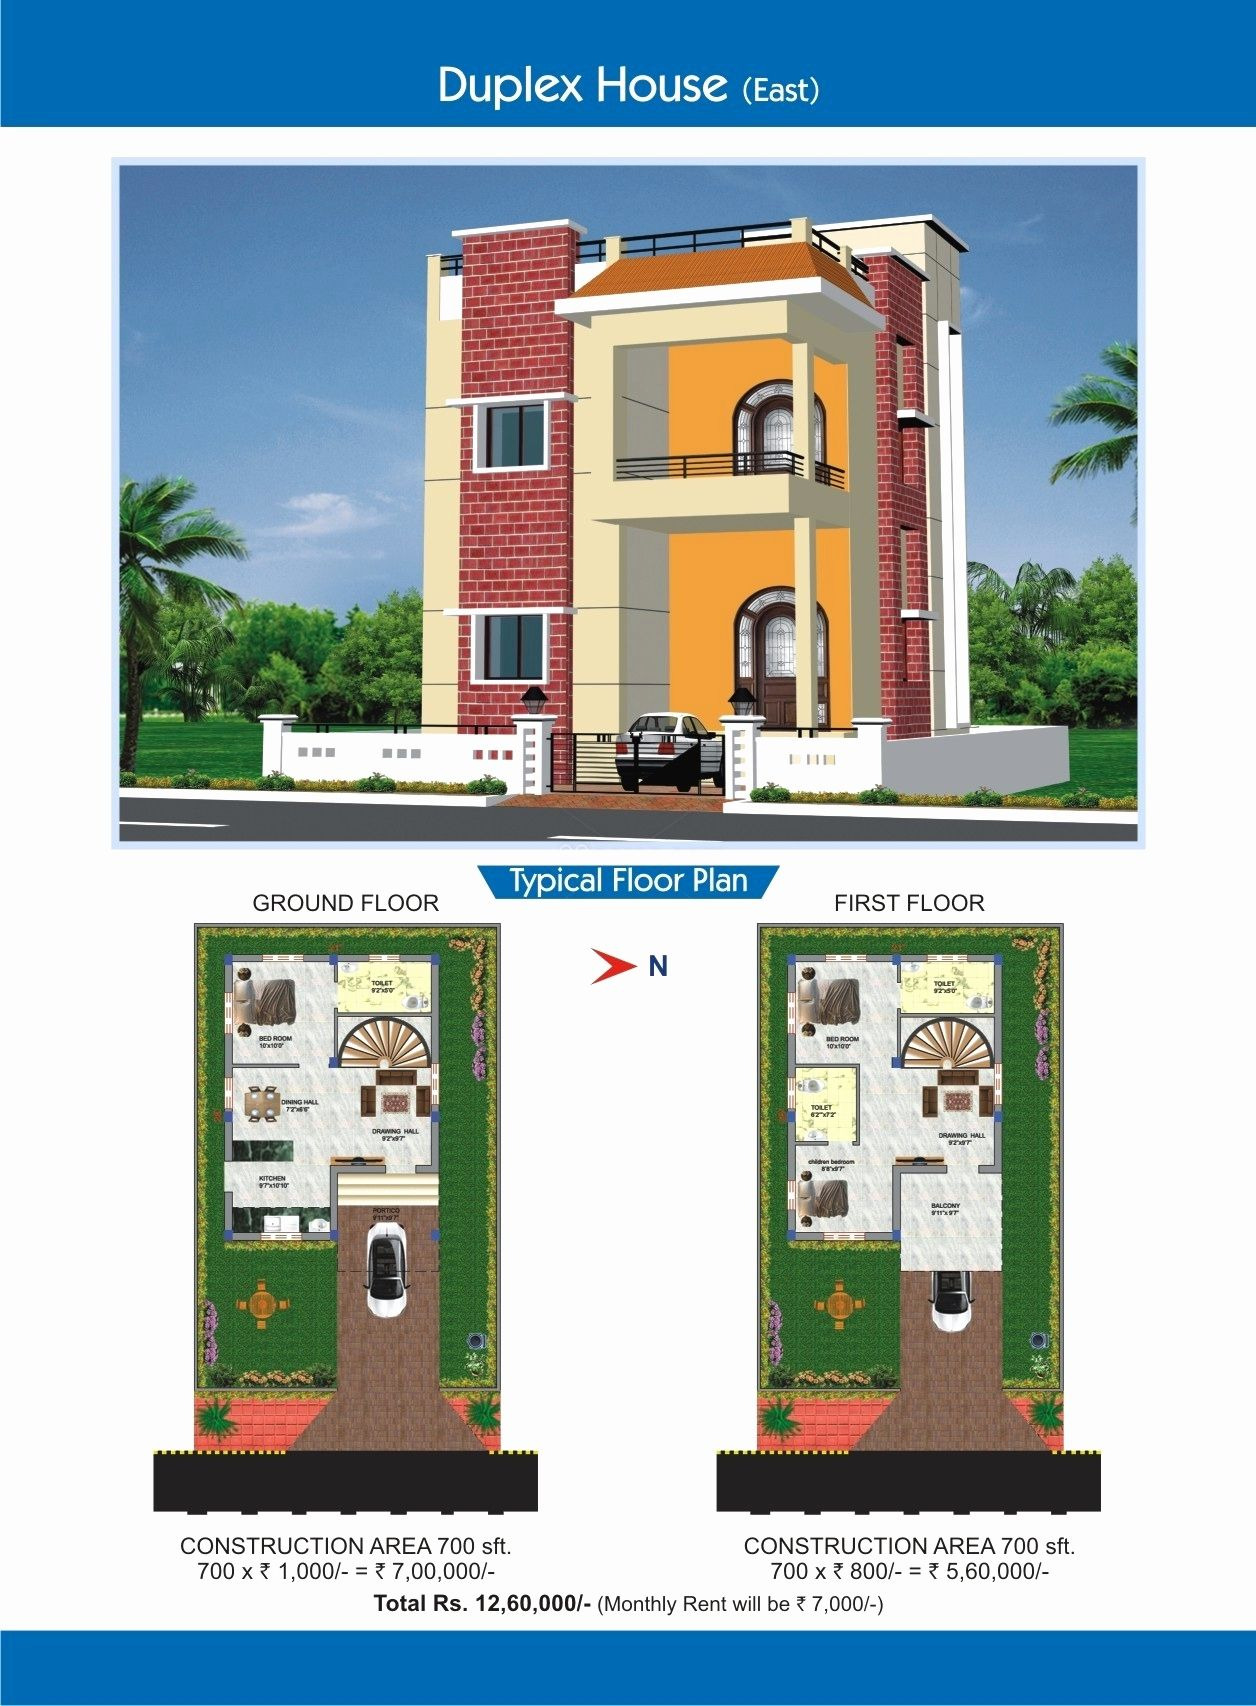 700 Sq Ft House Plans New Duplex House Floor Plans Indian Style Awesome Remarkable 700